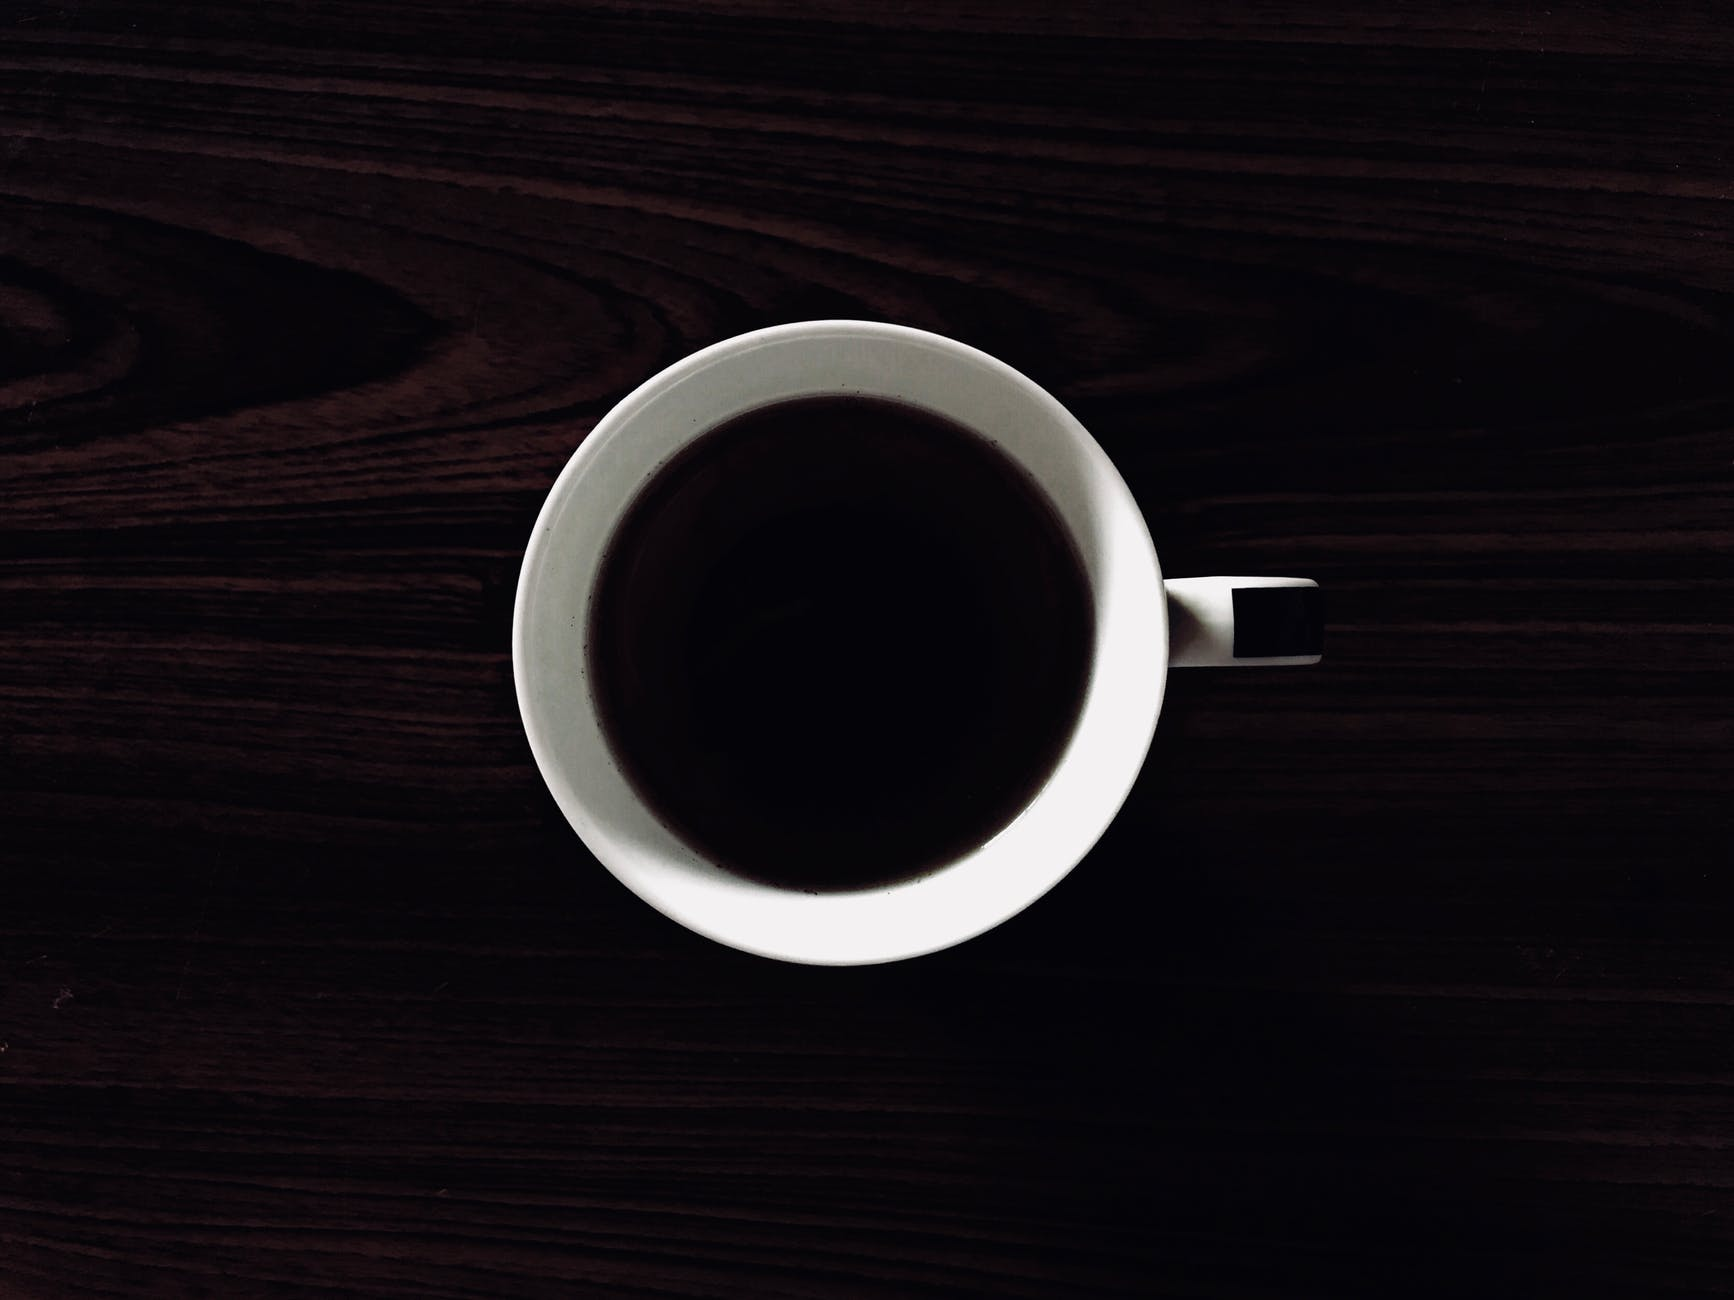 close up photo of a cup of coffee